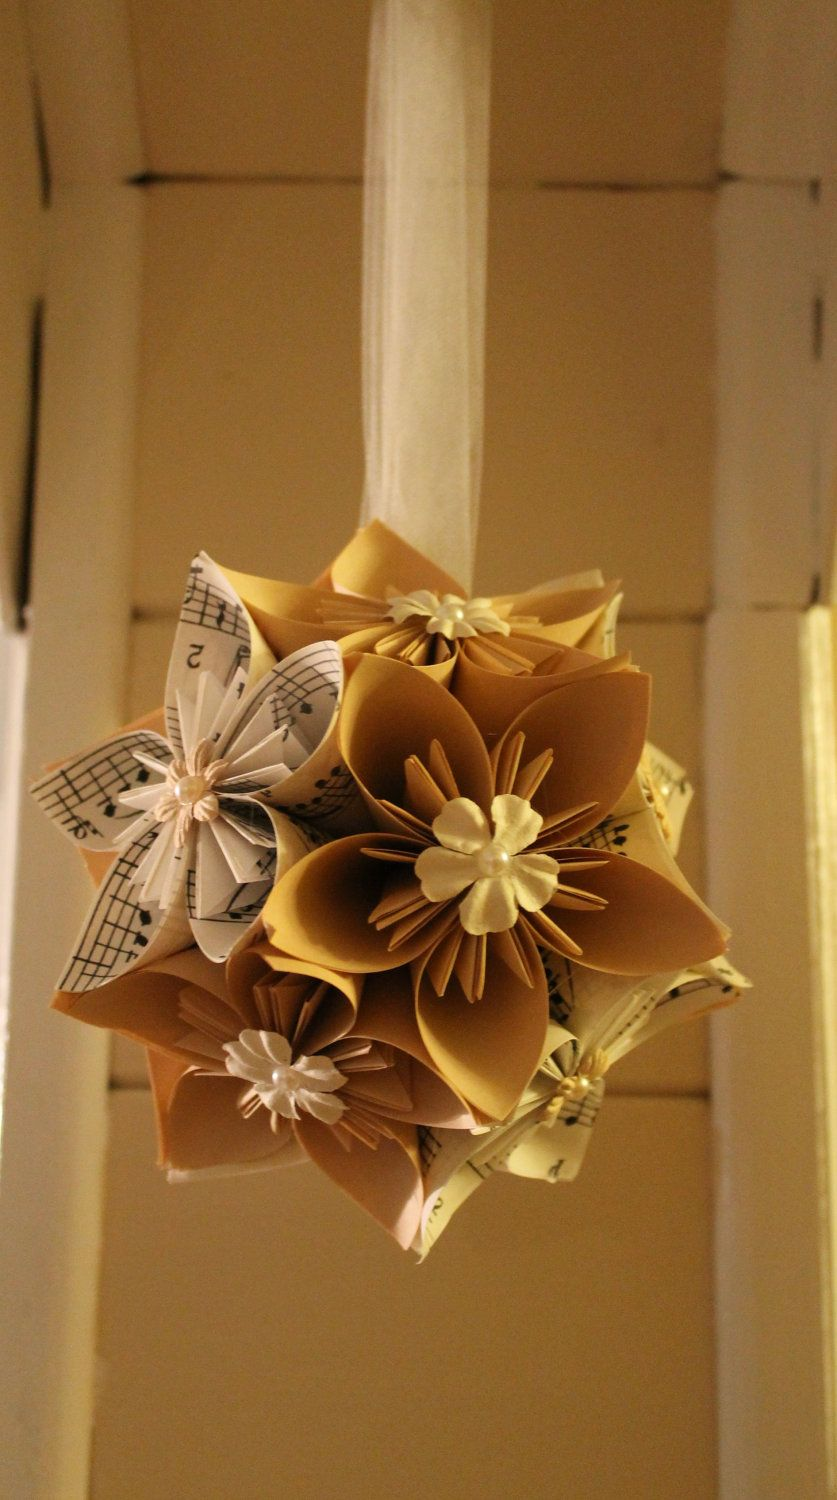 Sheet Music Origami Flower Ballpomander Free Shipping 3499